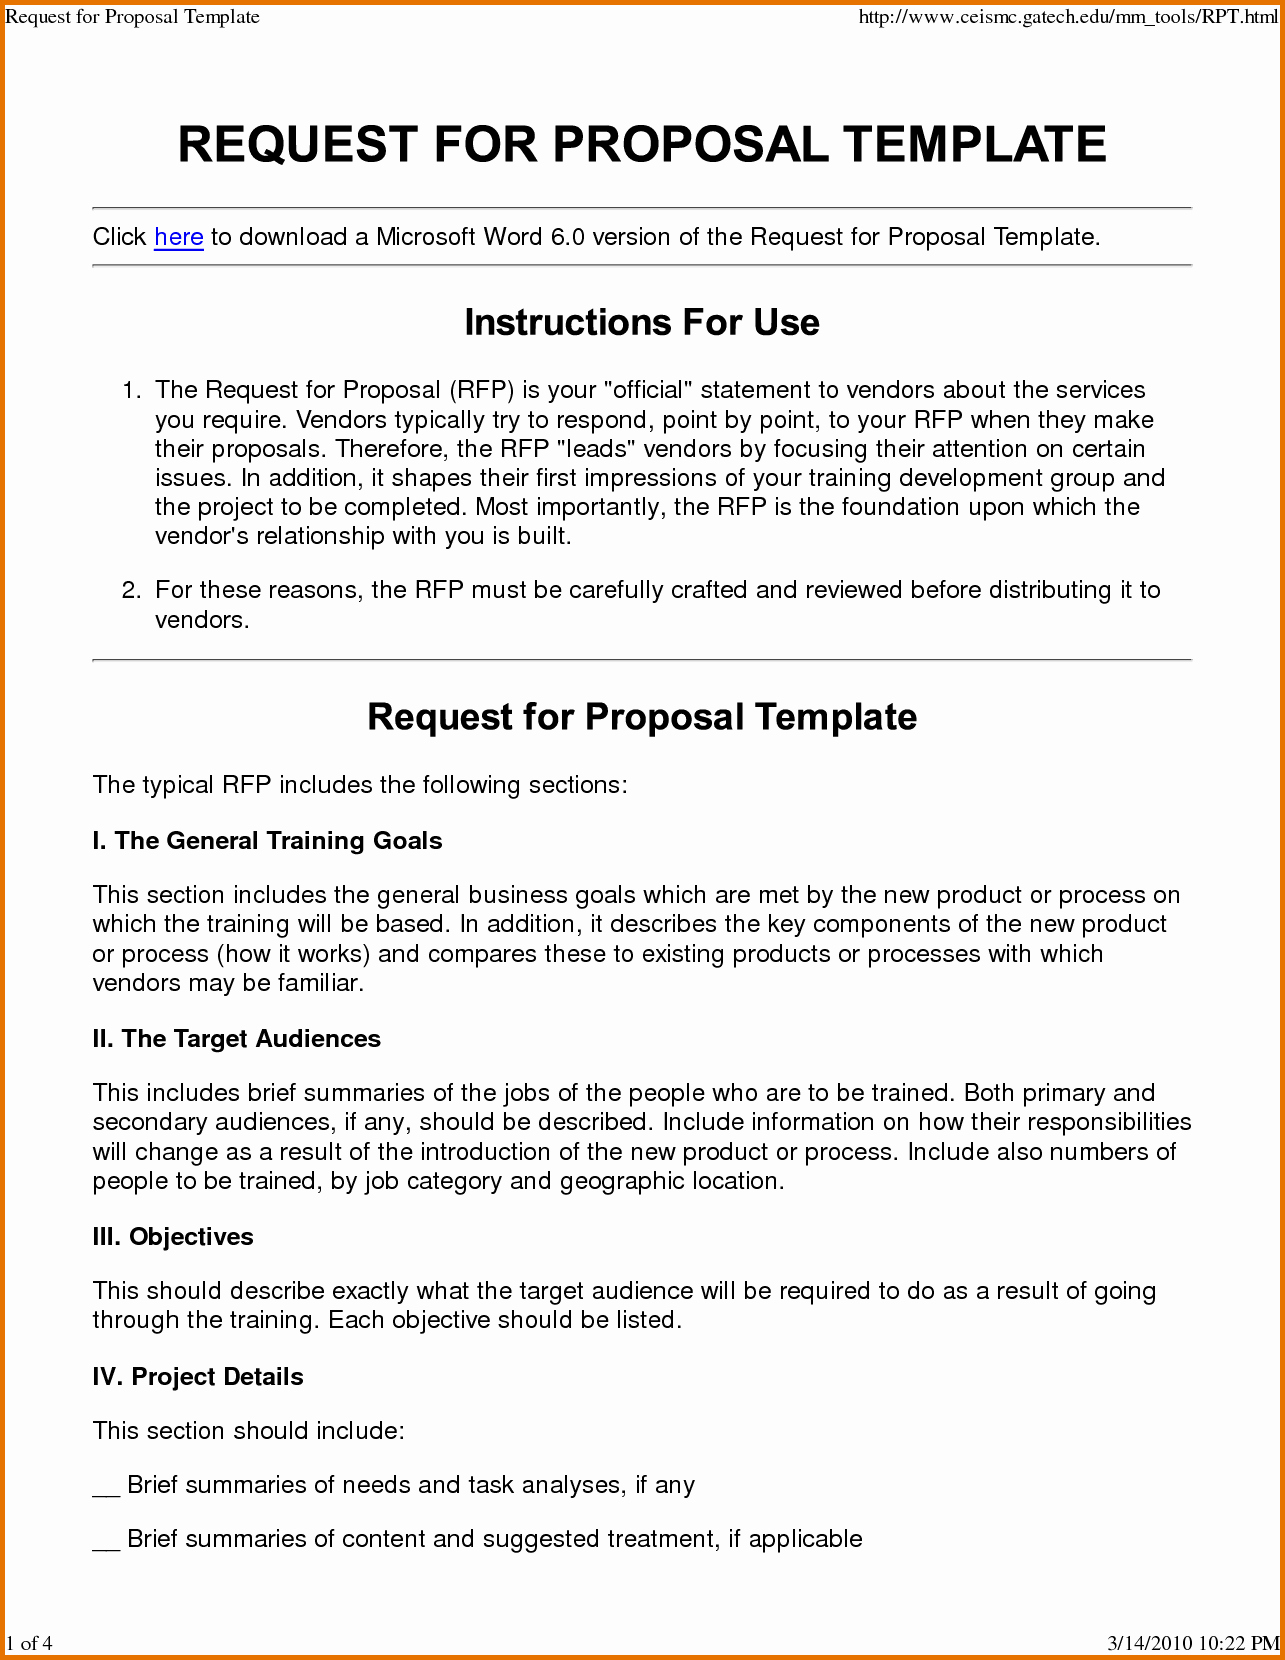 Rfp Response Template Microsoft Word Elegant Request for Proposal Template Wordreference Letters Words